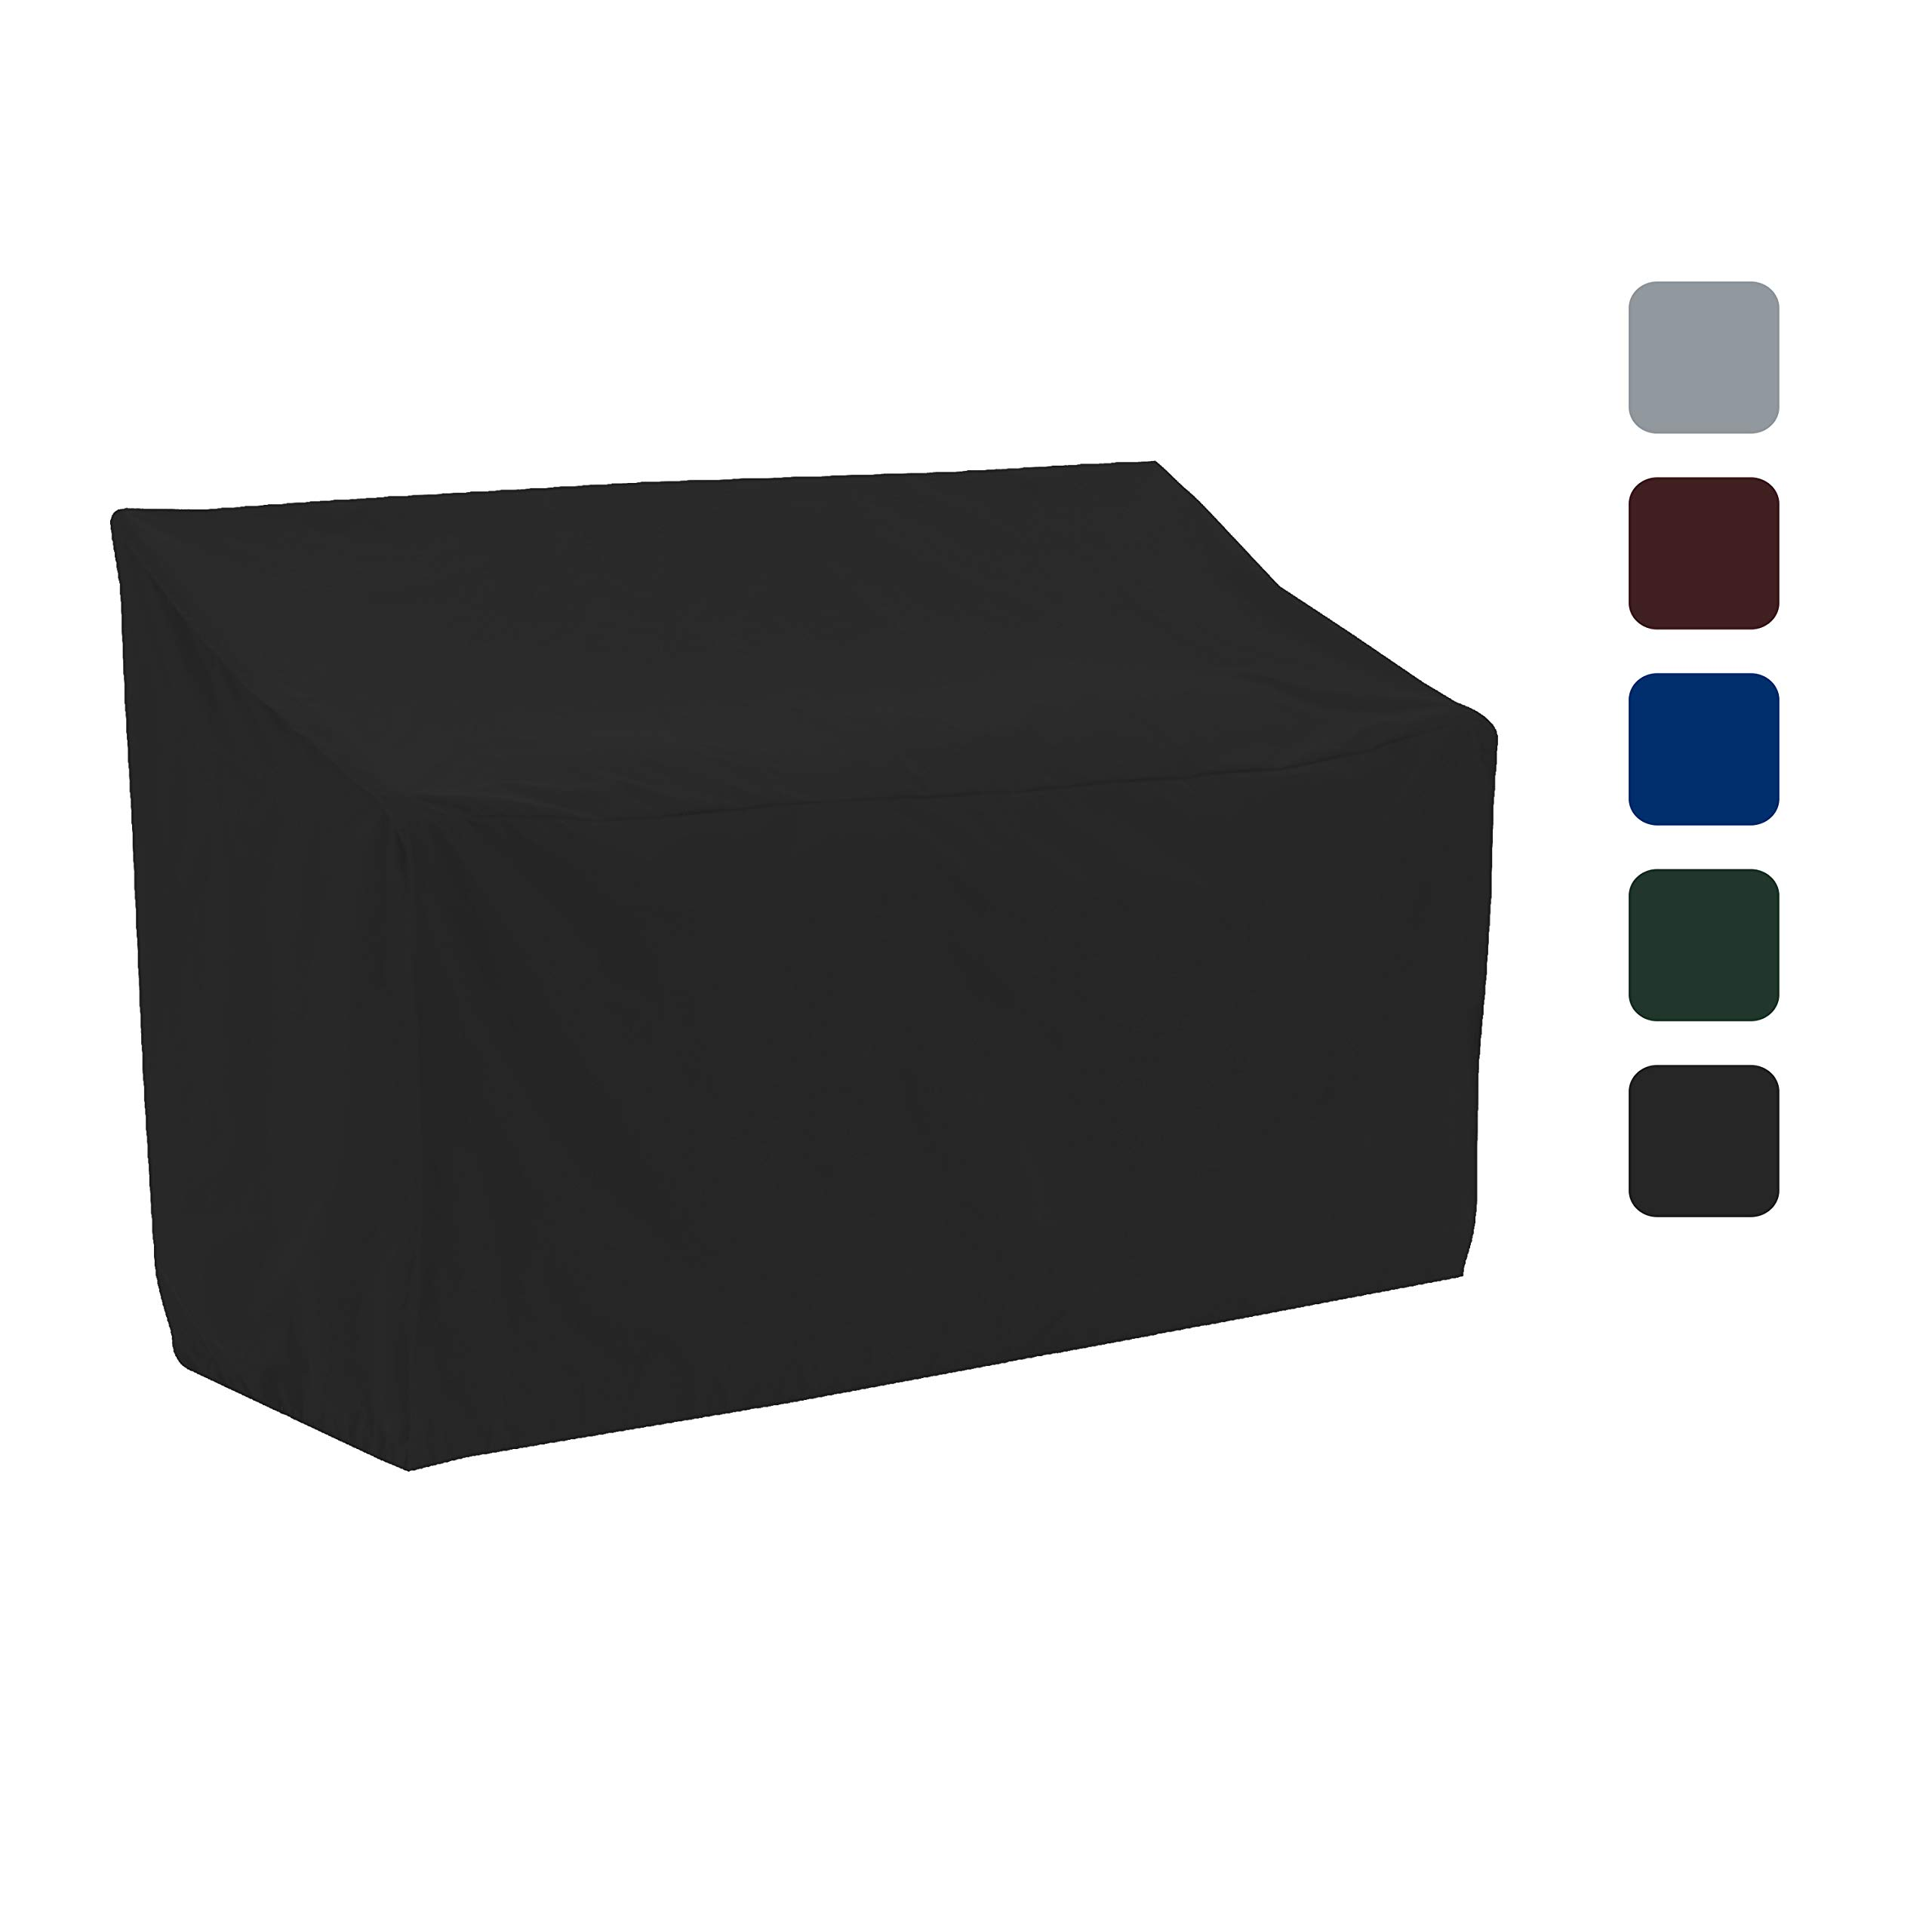 COVERS & ALL Bench Cover 18 Oz Waterproof - 100% UV & Weather Resistant Customizable Bench Seat Cover with Air Pockets and Drawstring for Snug Fit (50'' X 28.5'' X 30'', Black)